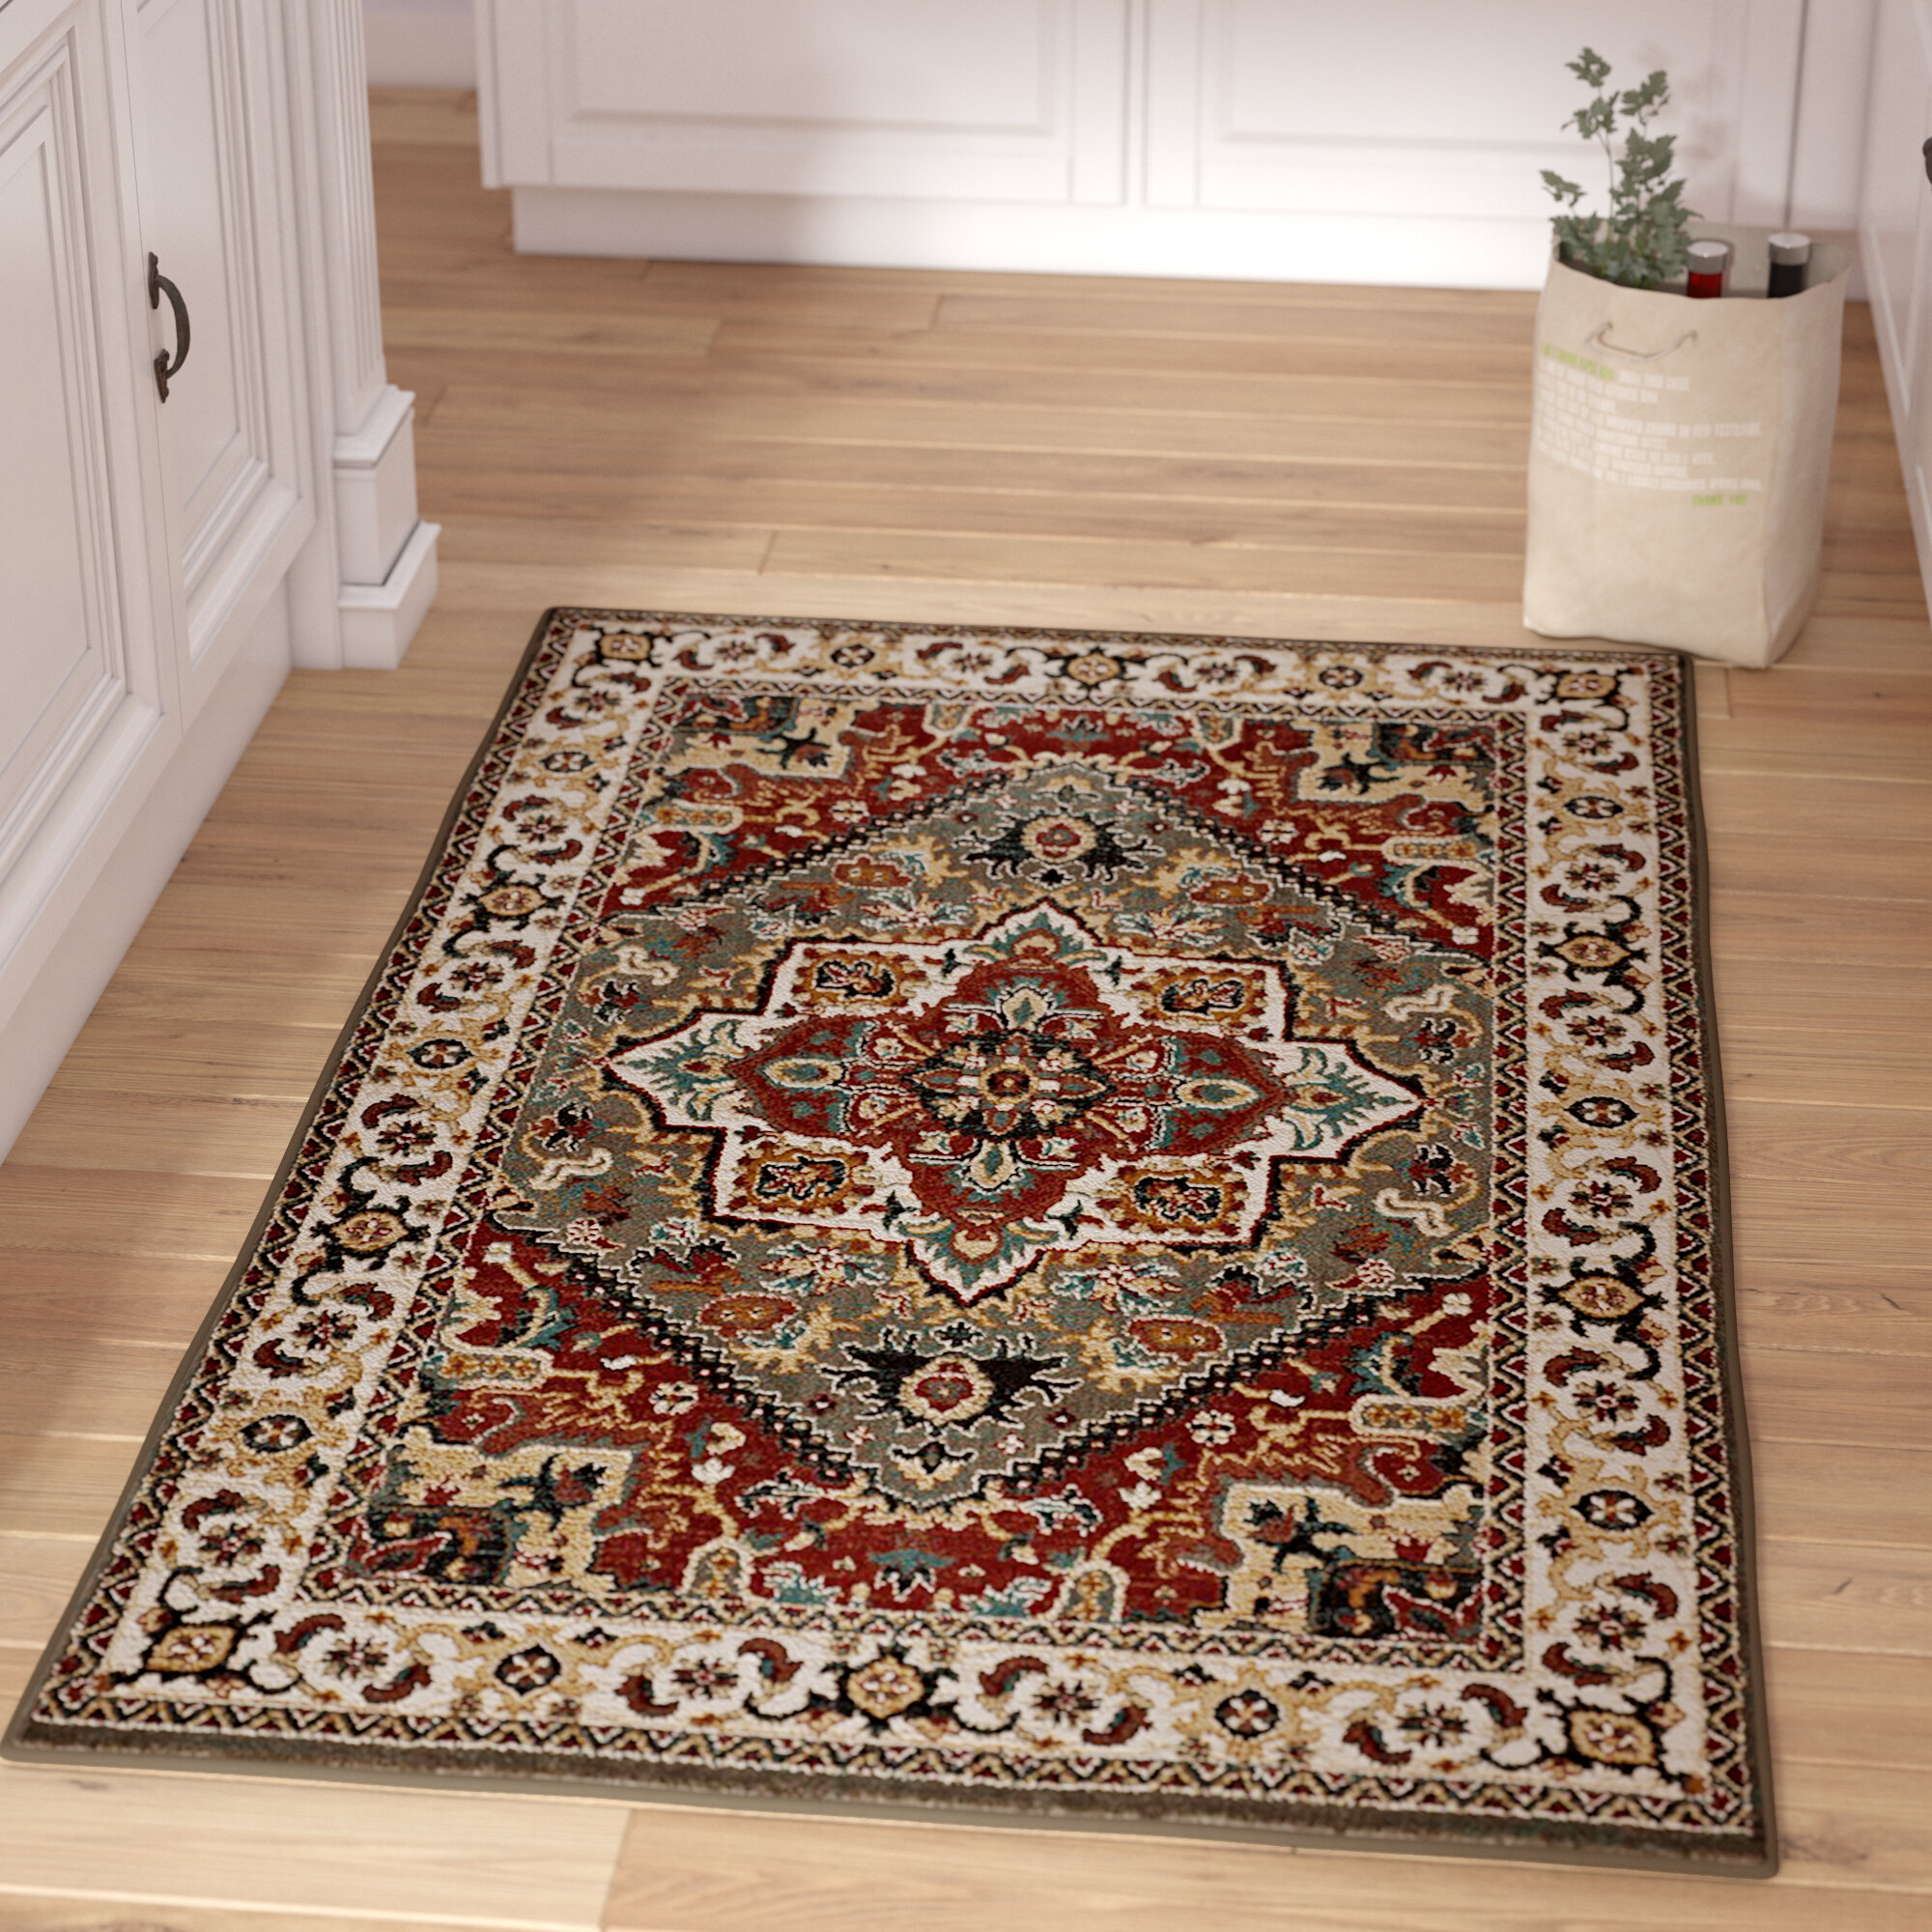 To acquire Carpets stylish conroe picture trends